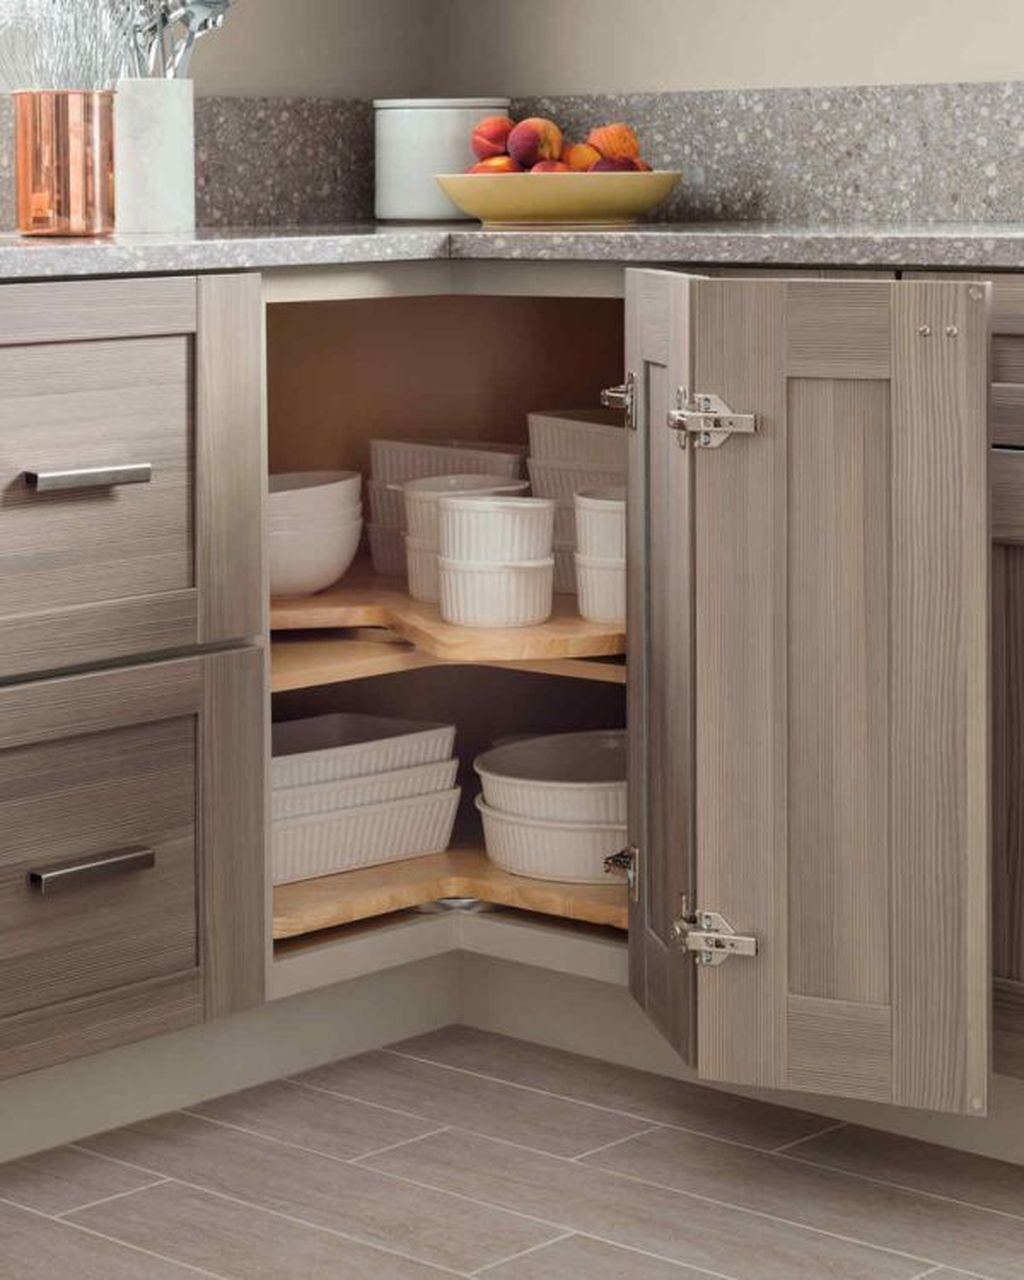 Cool Diy Kitchen Design Ideas You Will Definitely Want To Keep 14